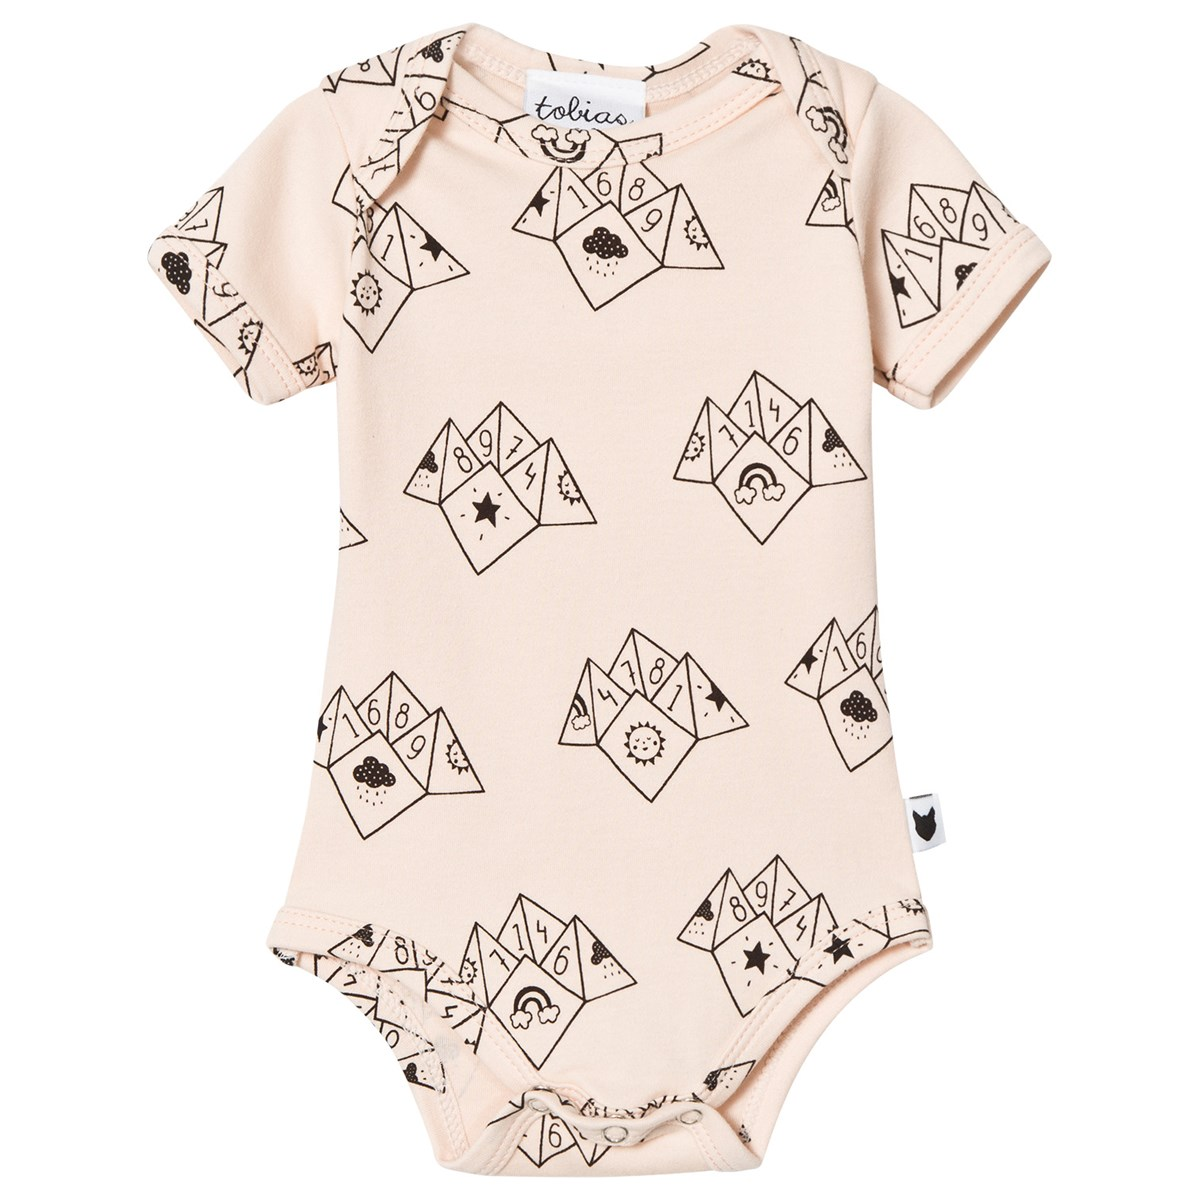 Baby Teller Tobias The Bear Peach Fortune Teller Print Baby Body Babyshop